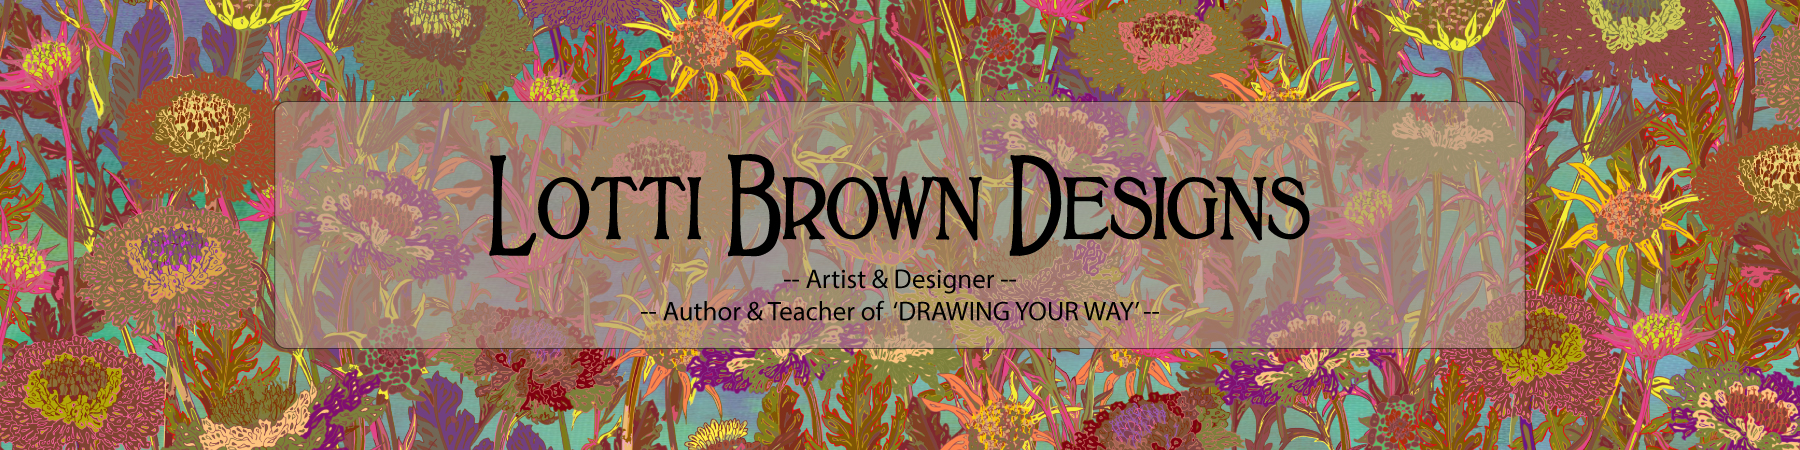 Lotti Brown Designs